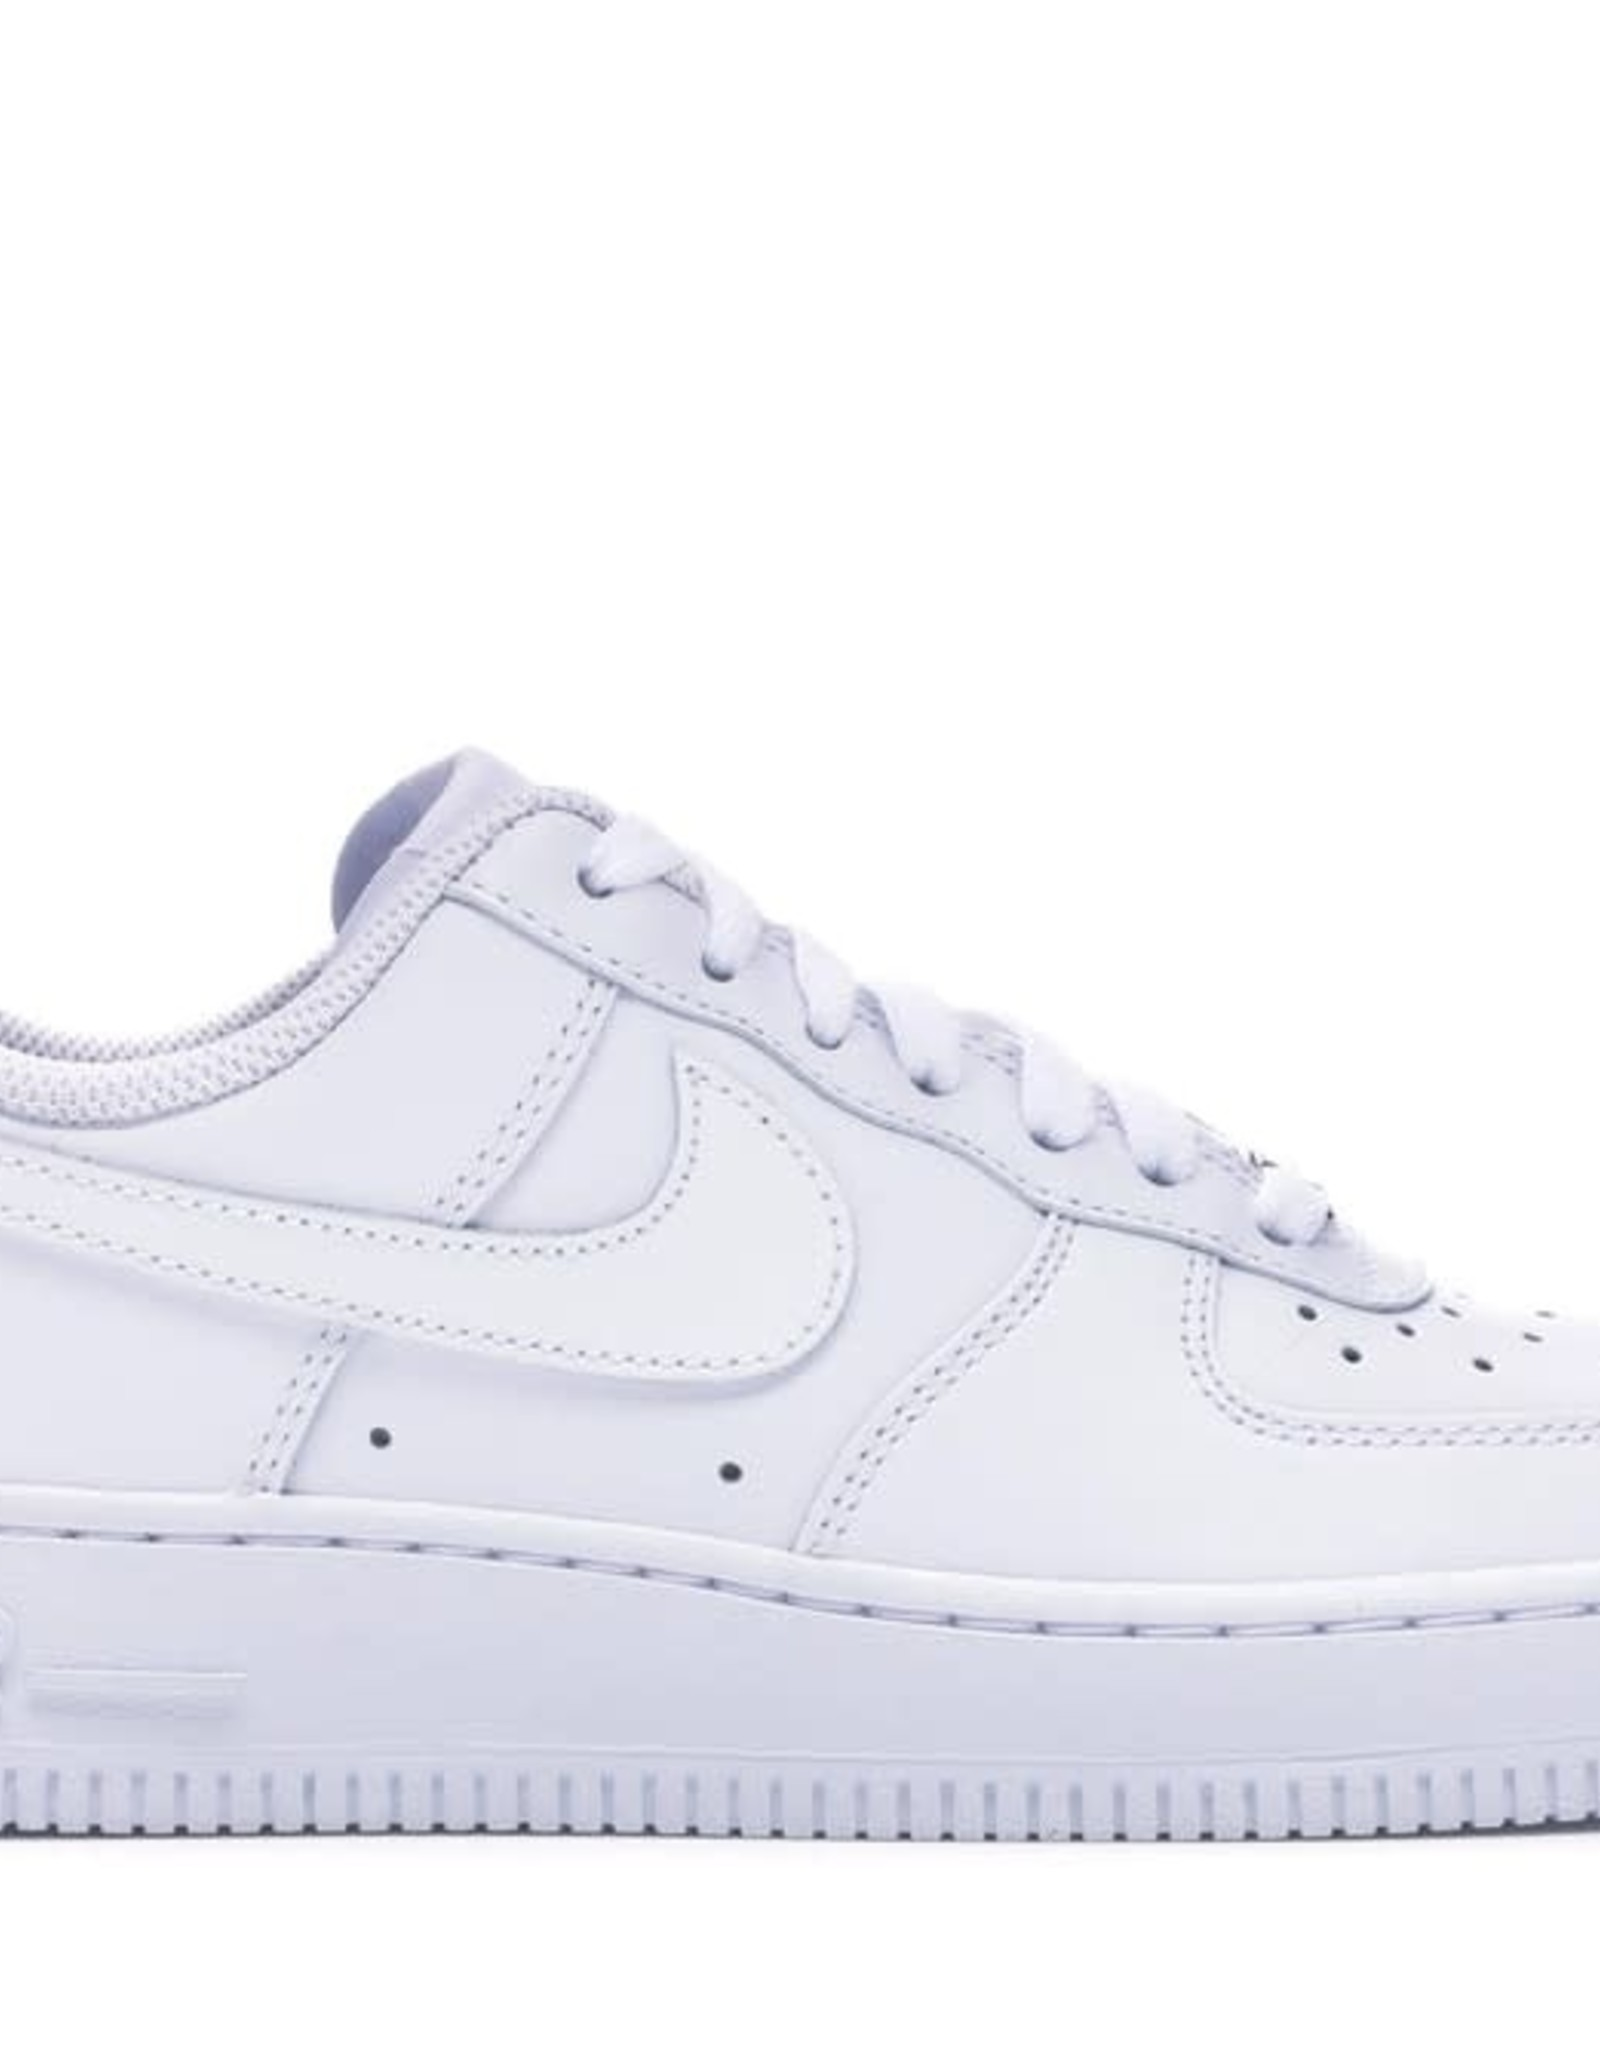 NIKE Air Force 1 Low 2018 (W)